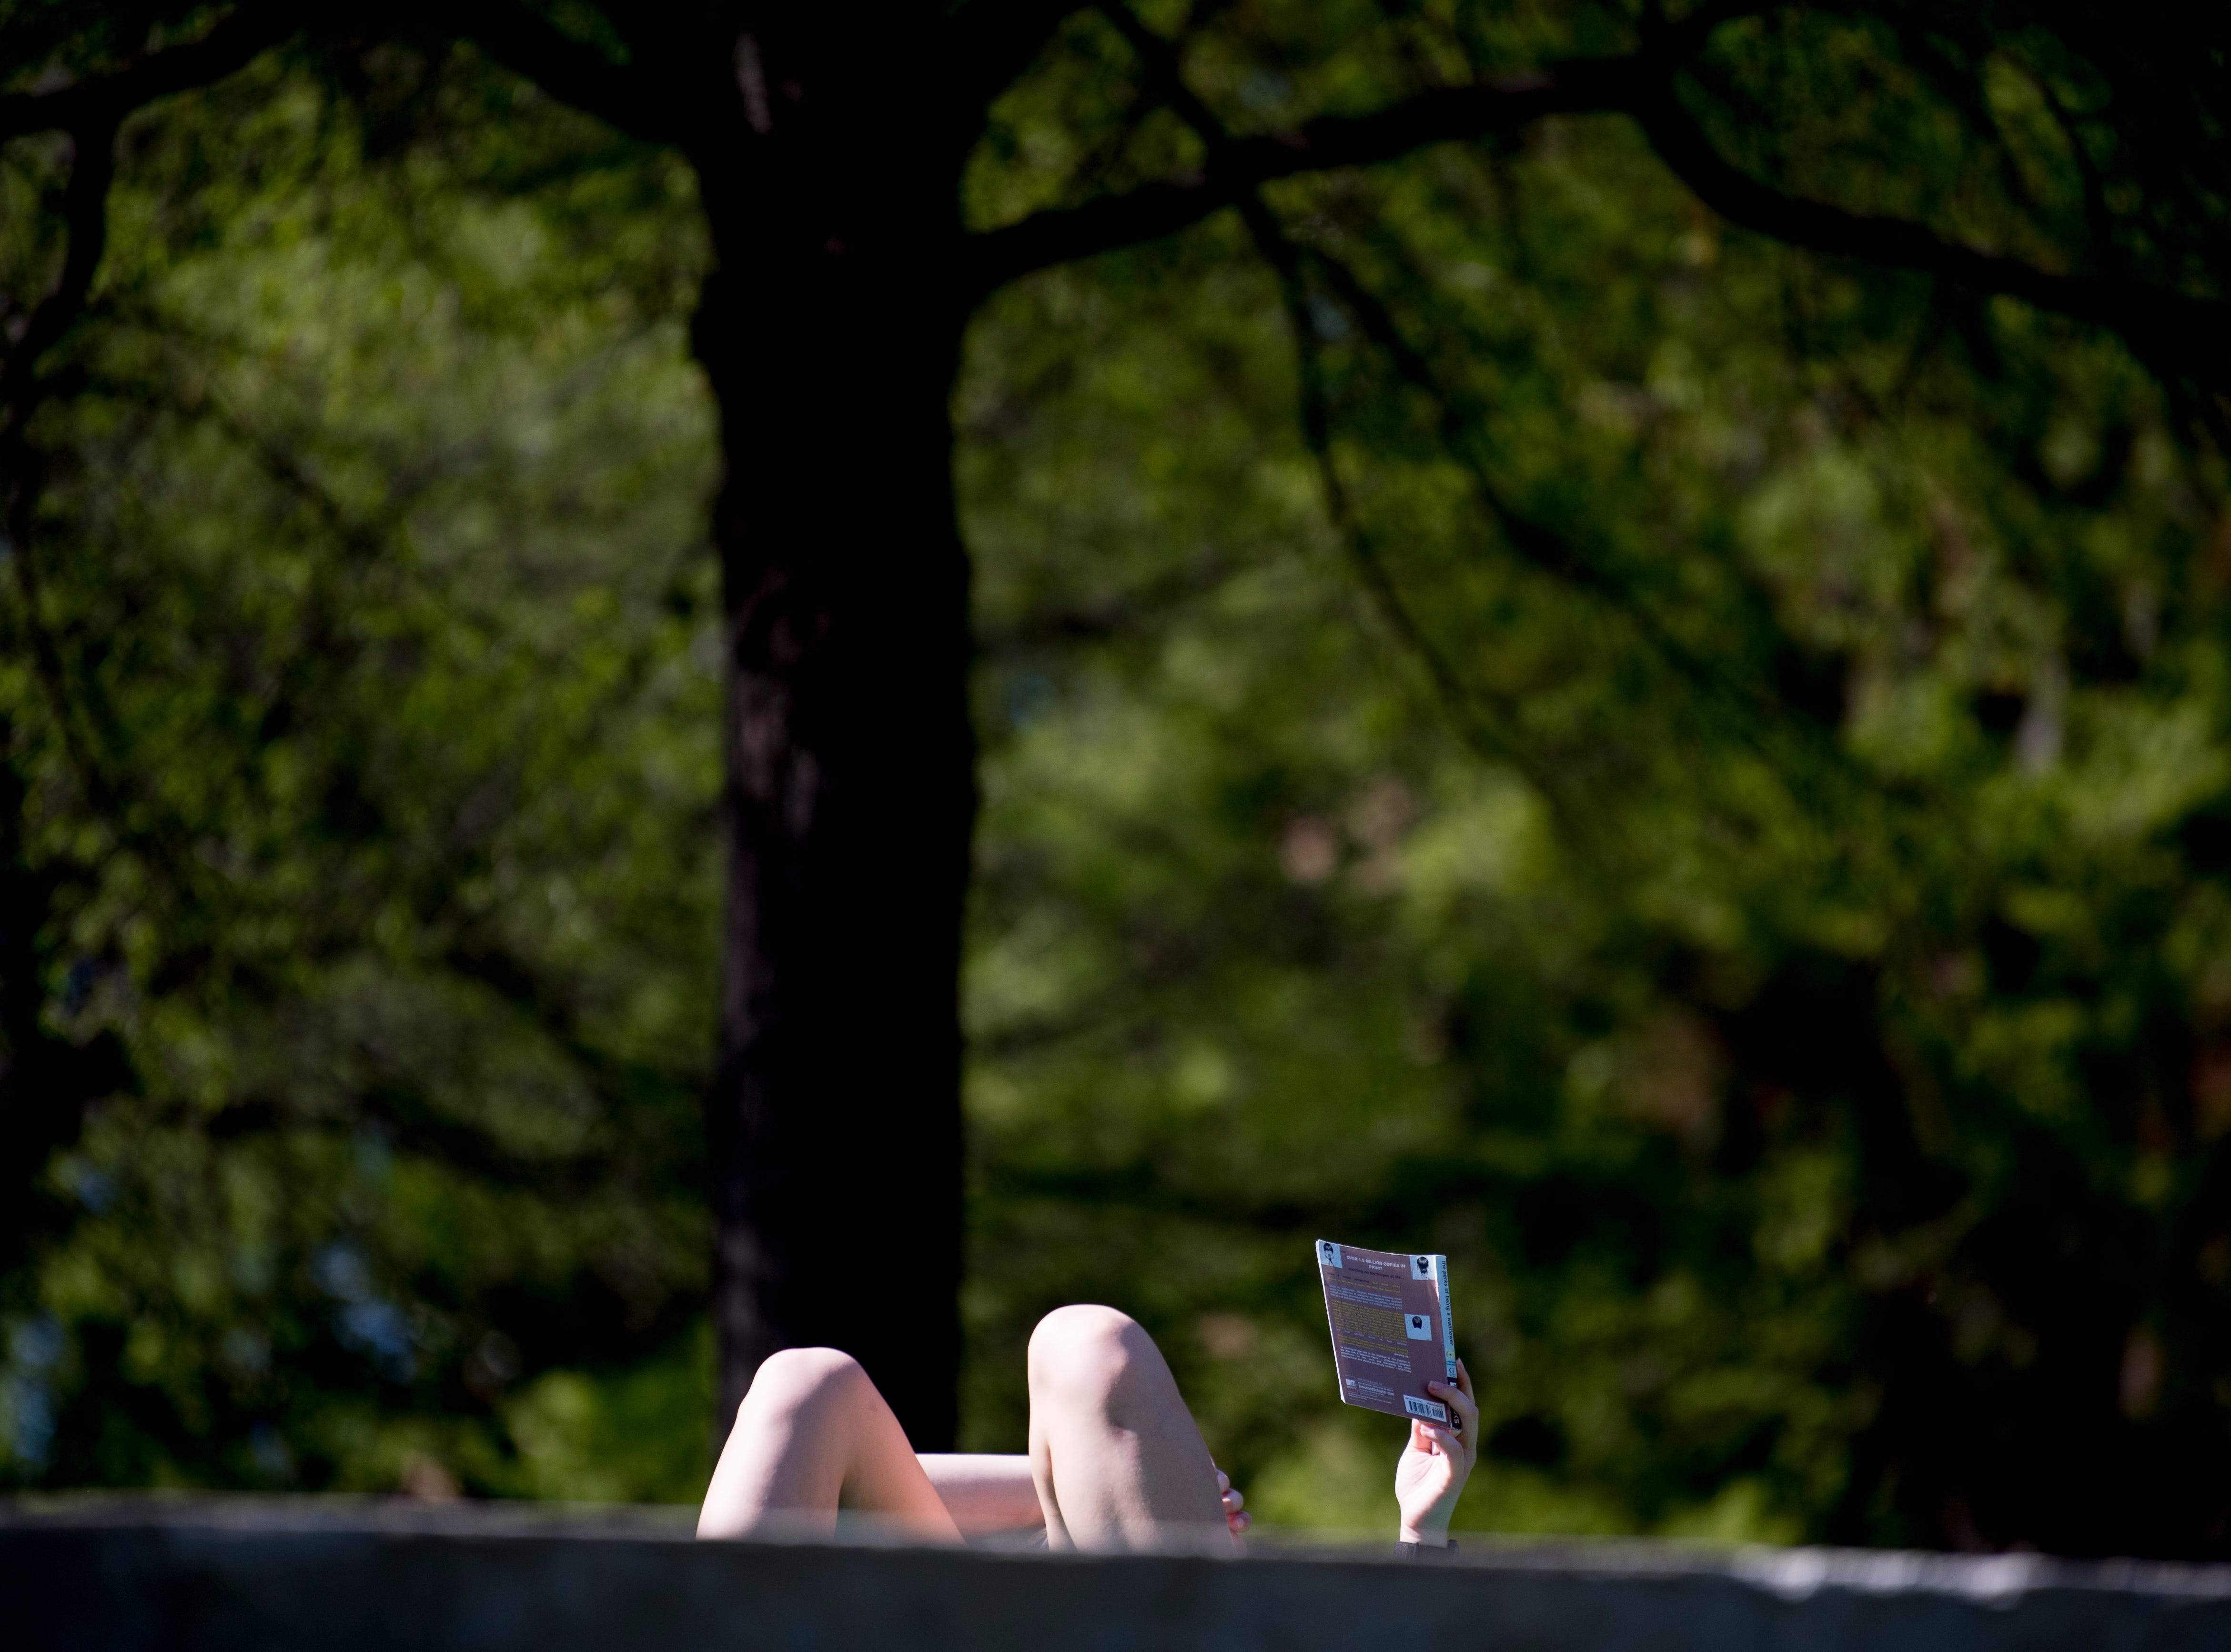 A student reads a book in the amphitheater lawn on the UTK campus in Knoxville, Tennessee on Wednesday, April 10, 2019.